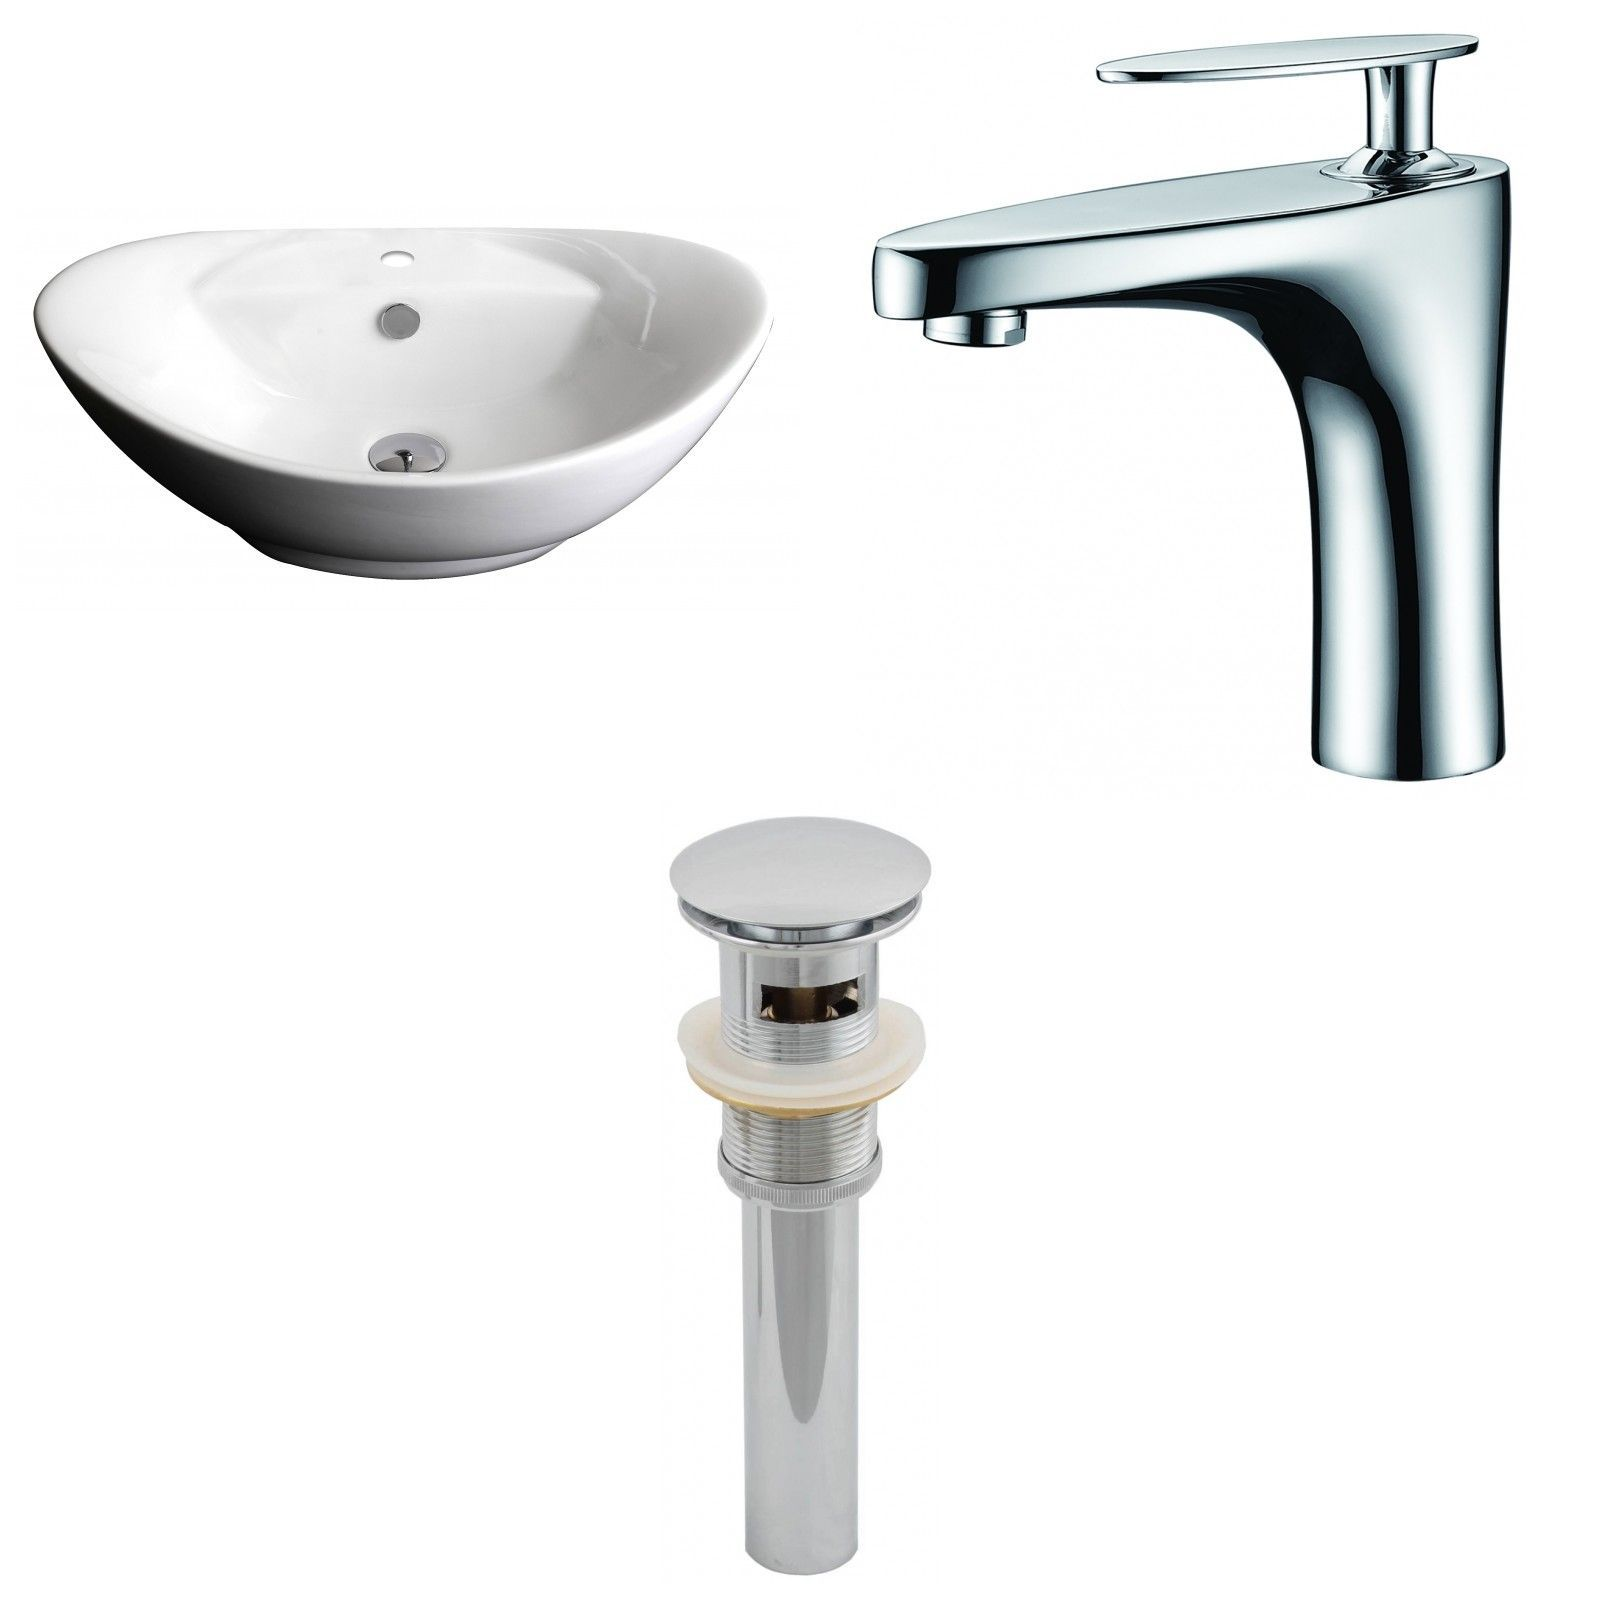 Ceramic Oval Vessel Bathroom Sink With Faucet And Overflow Sink Faucet Wall Mounted Bathroom Sinks